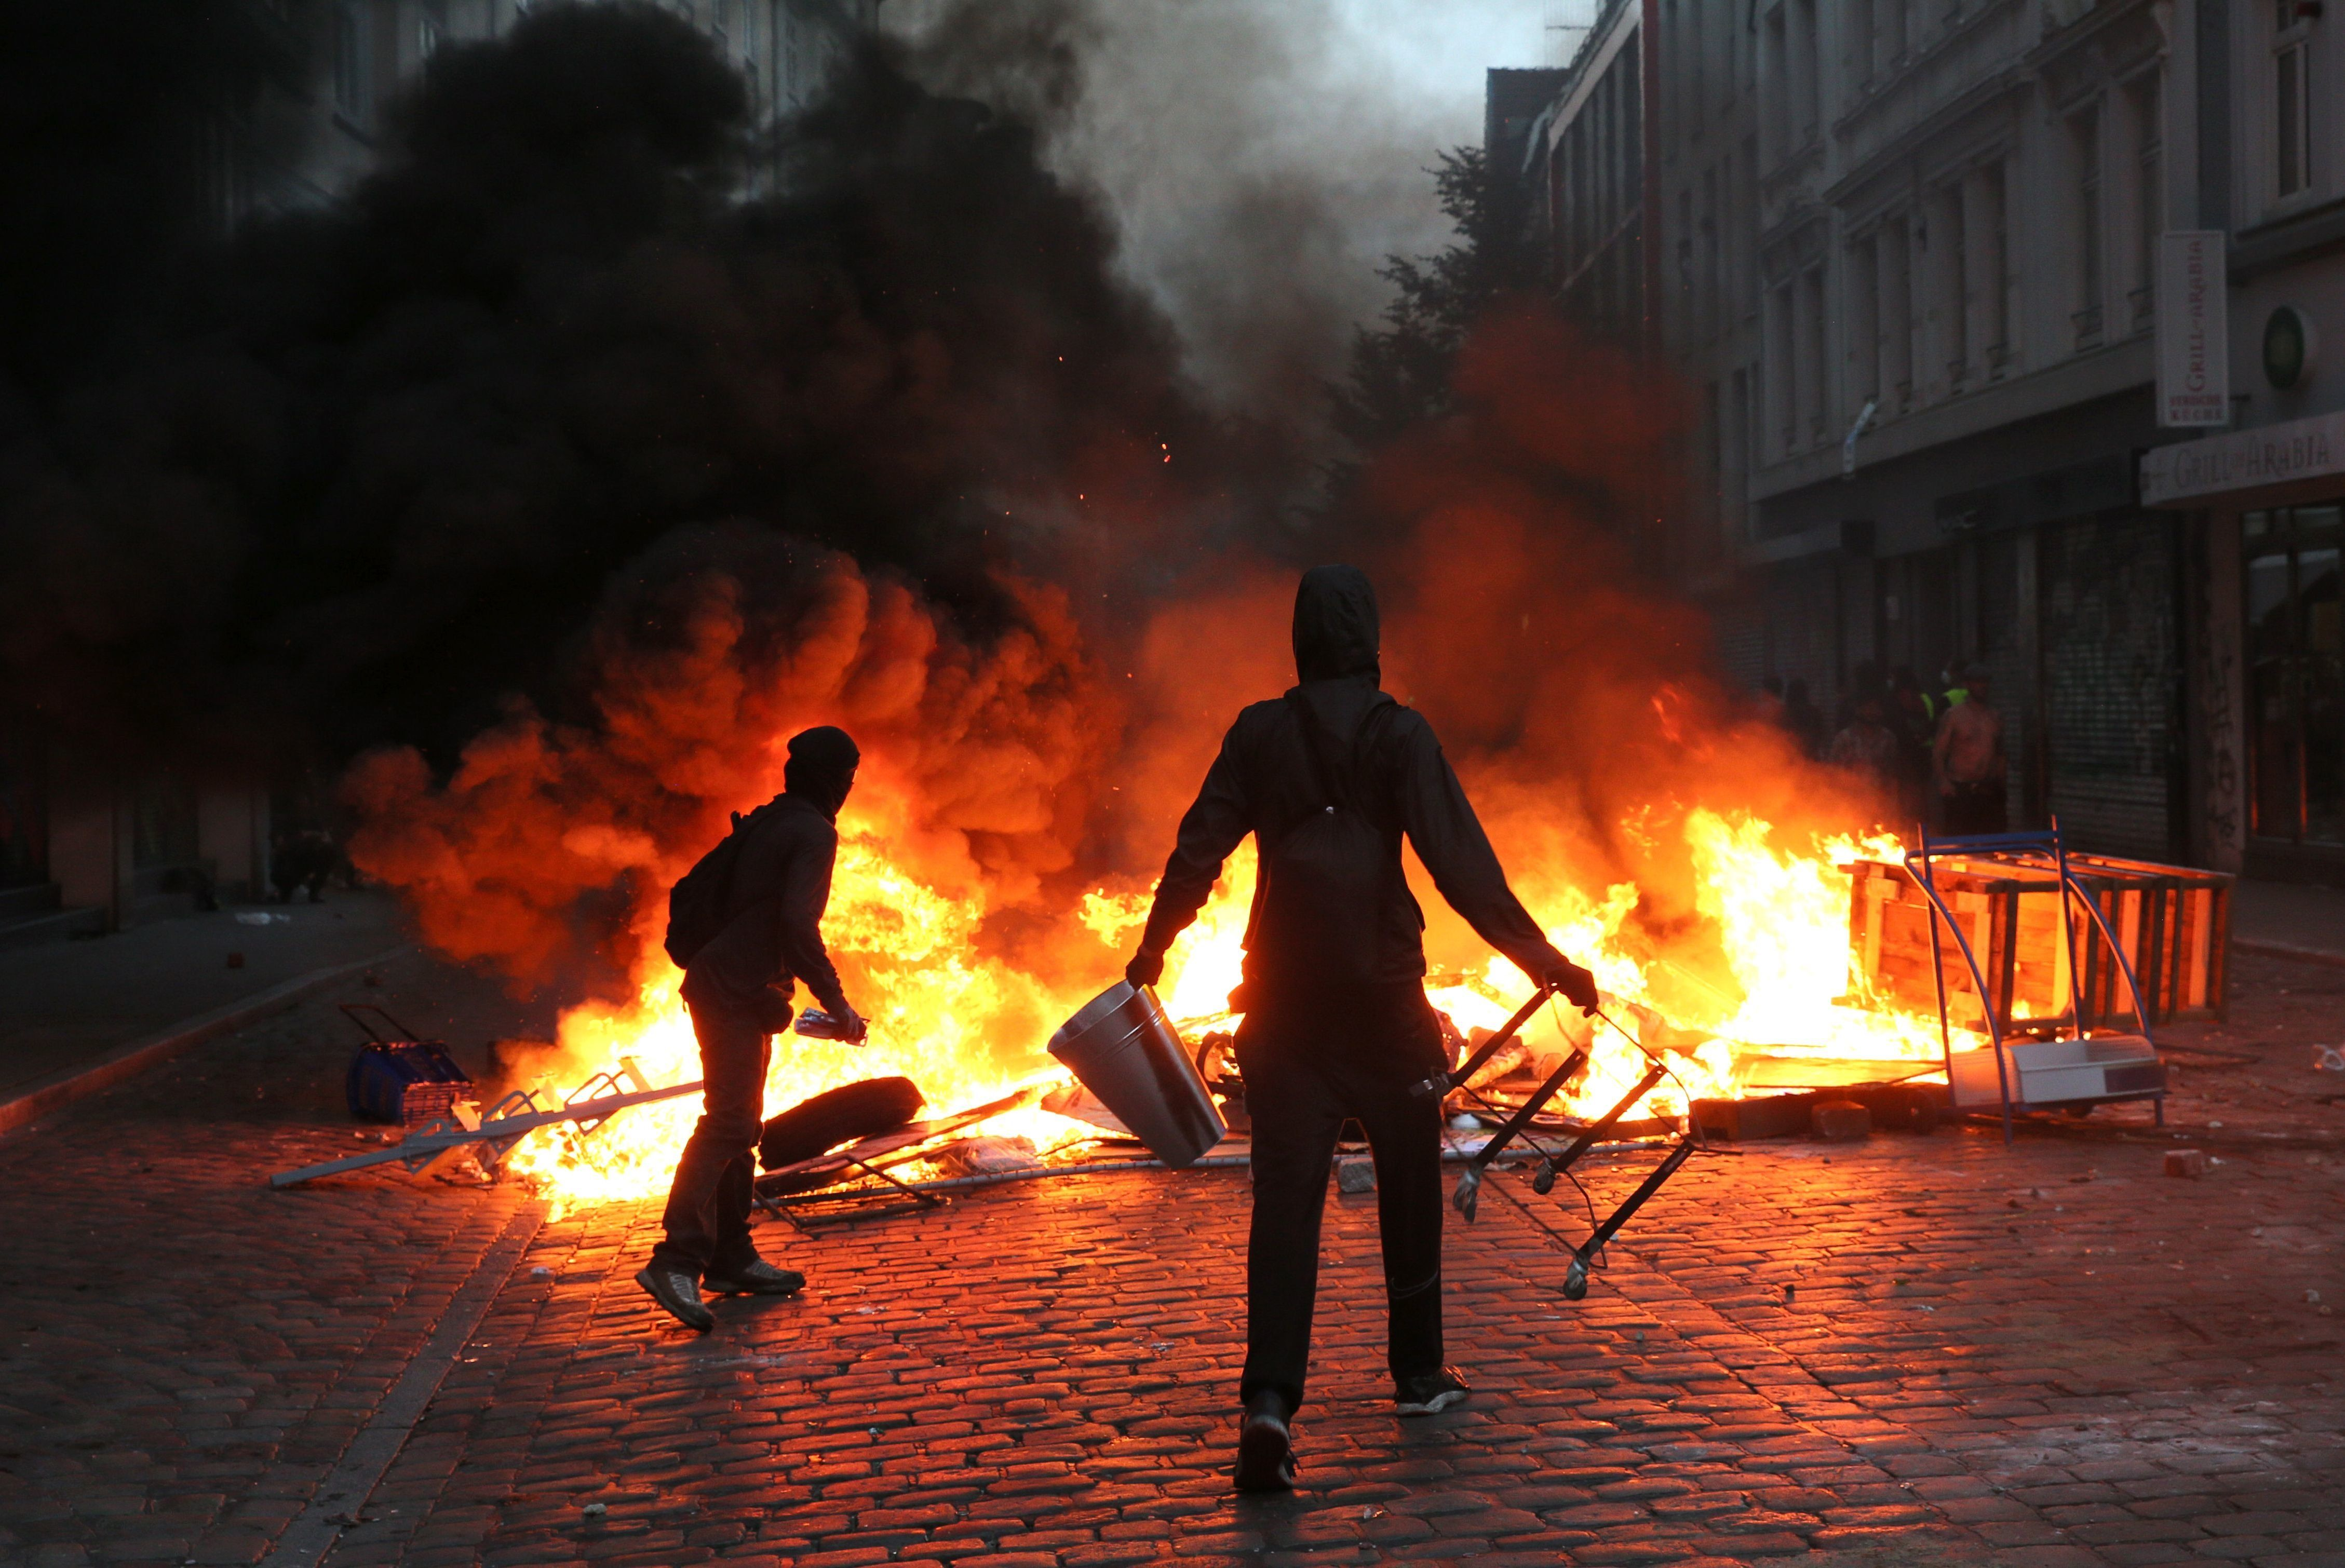 Protesters have set barricades alight on July 7, 2017 in Hamburg, northern Germany, where leaders of the world's top economies gather for a G20 summit. Protesters clashed with police and torched patrol cars in fresh violence ahead of the G20 summit, police said. German police and protestors had clashed already the day before at an anti-G20 march, with police using water cannon and tear gas to clear a hardcore of masked anti-capitalist demonstrators, AFP reporters said. / AFP PHOTO / dpa / Markus Scholz / Germany OUT        (Photo credit should read MARKUS SCHOLZ/AFP/Getty Images)